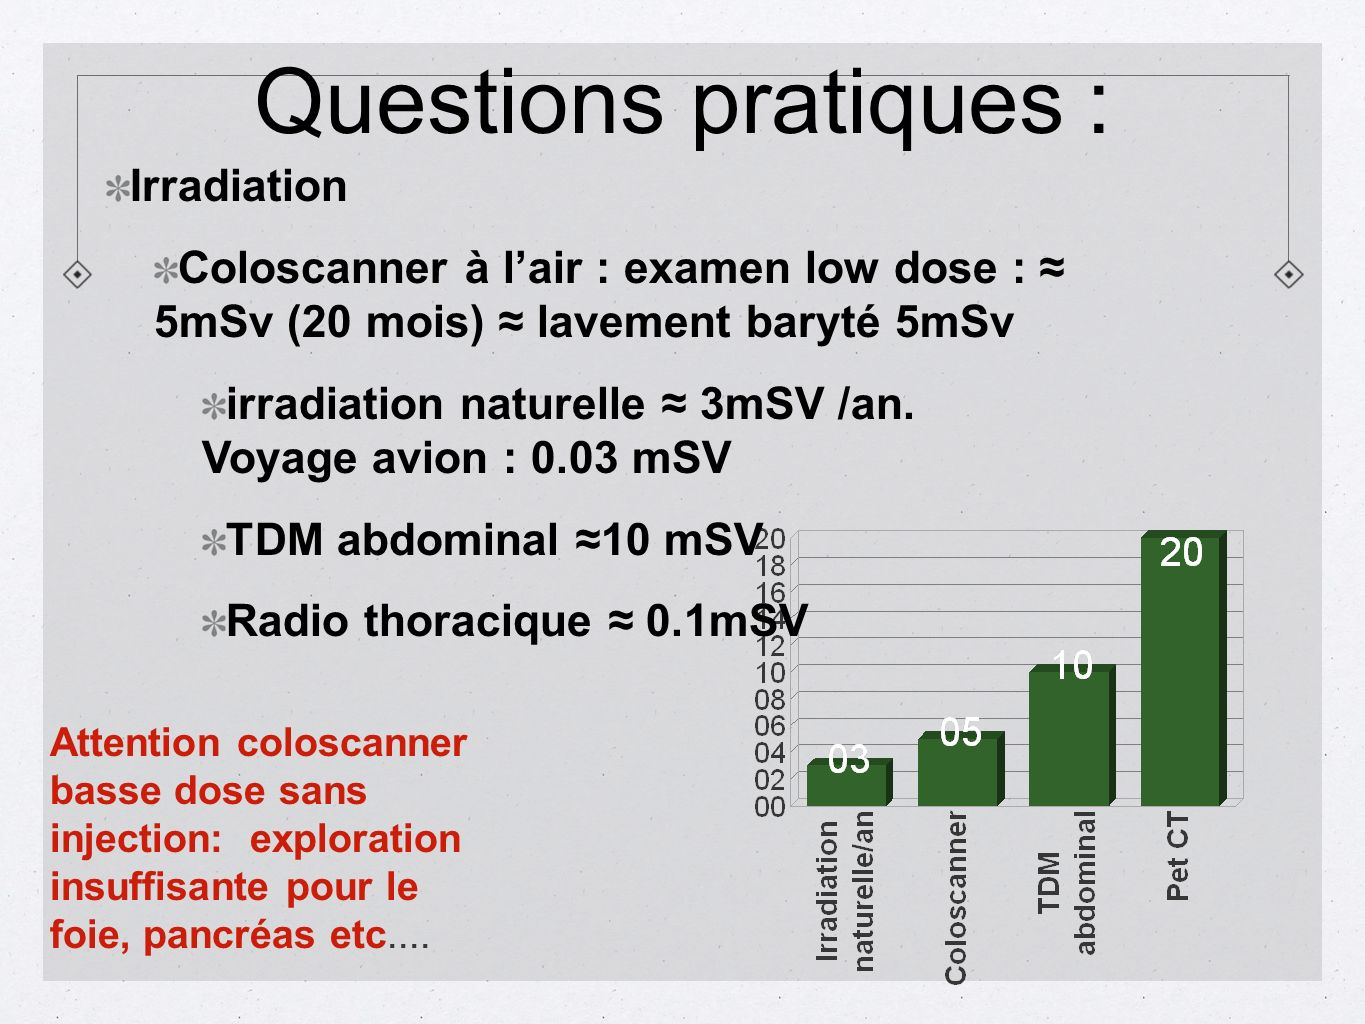 Irradiation Coloscanner à lair : examen low dose : 5mSv (20 mois) lavement baryté 5mSv irradiation naturelle 3mSV /an.